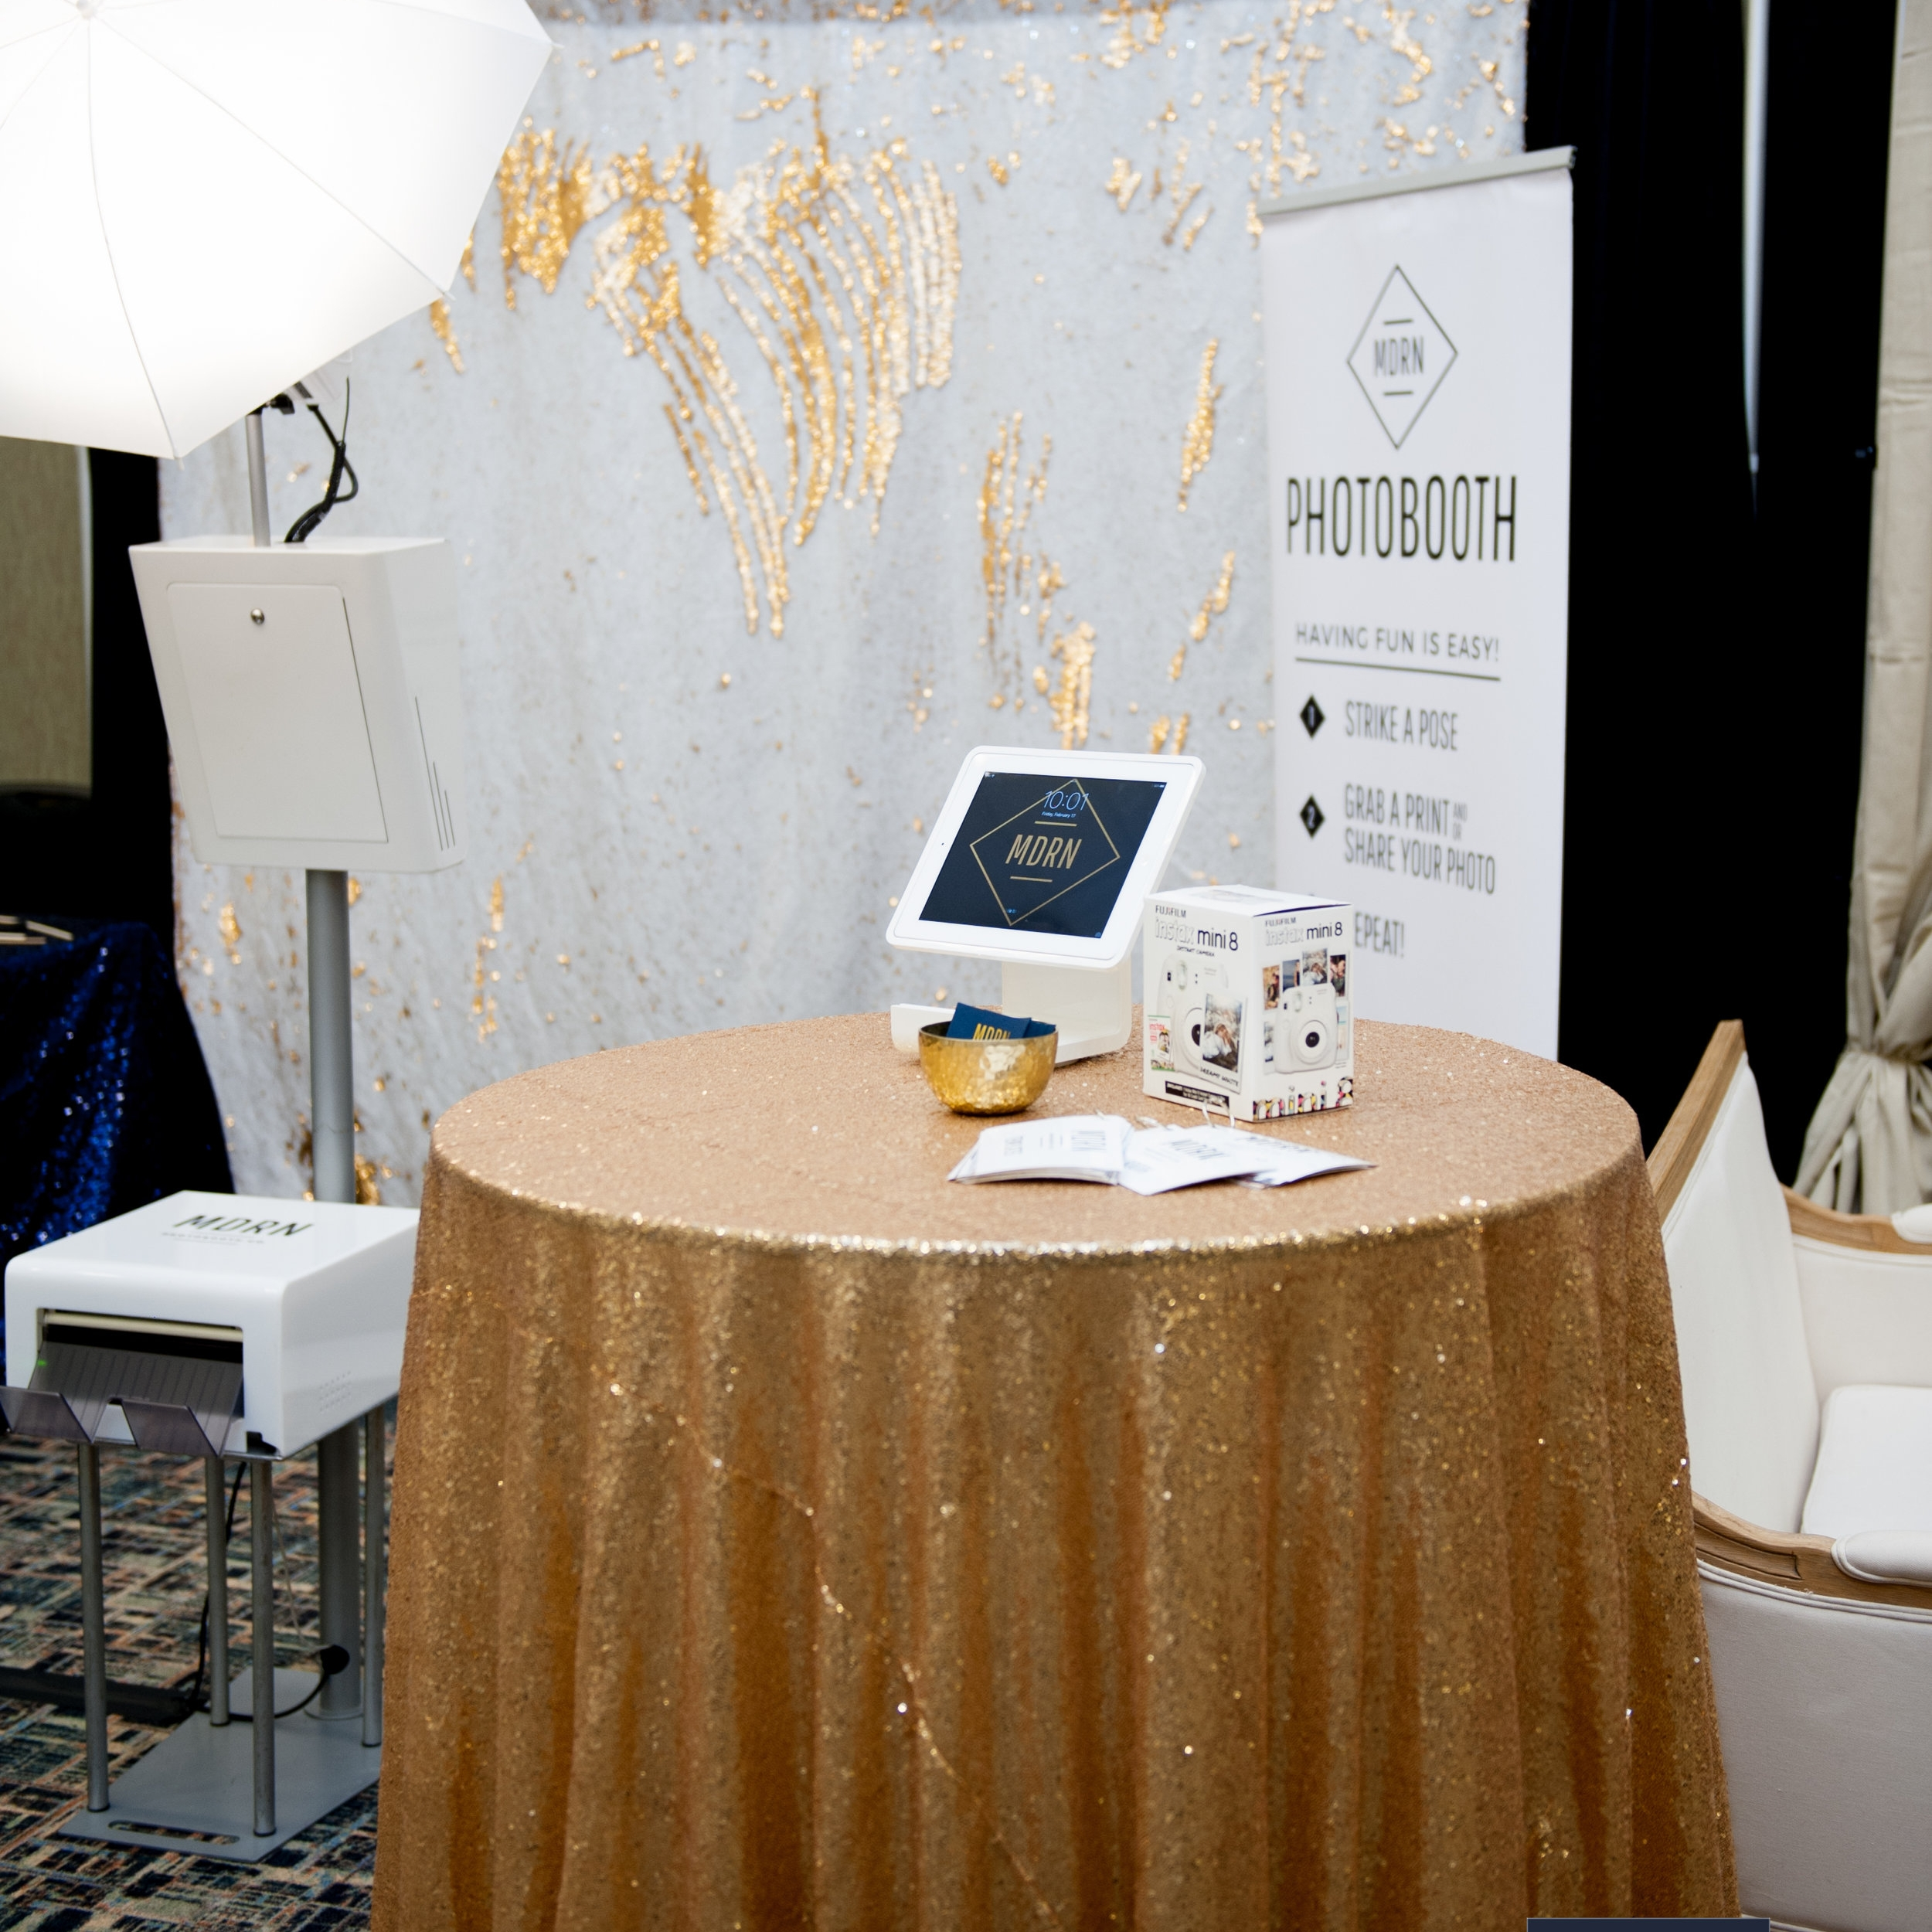 chair cover rentals halifax tall deck chairs tie the knot wedding show 2017 mdrn photobooth company ottawa when you re planning a it s easy to get overwhelmed with how many vendors are out there do make choice know which ones